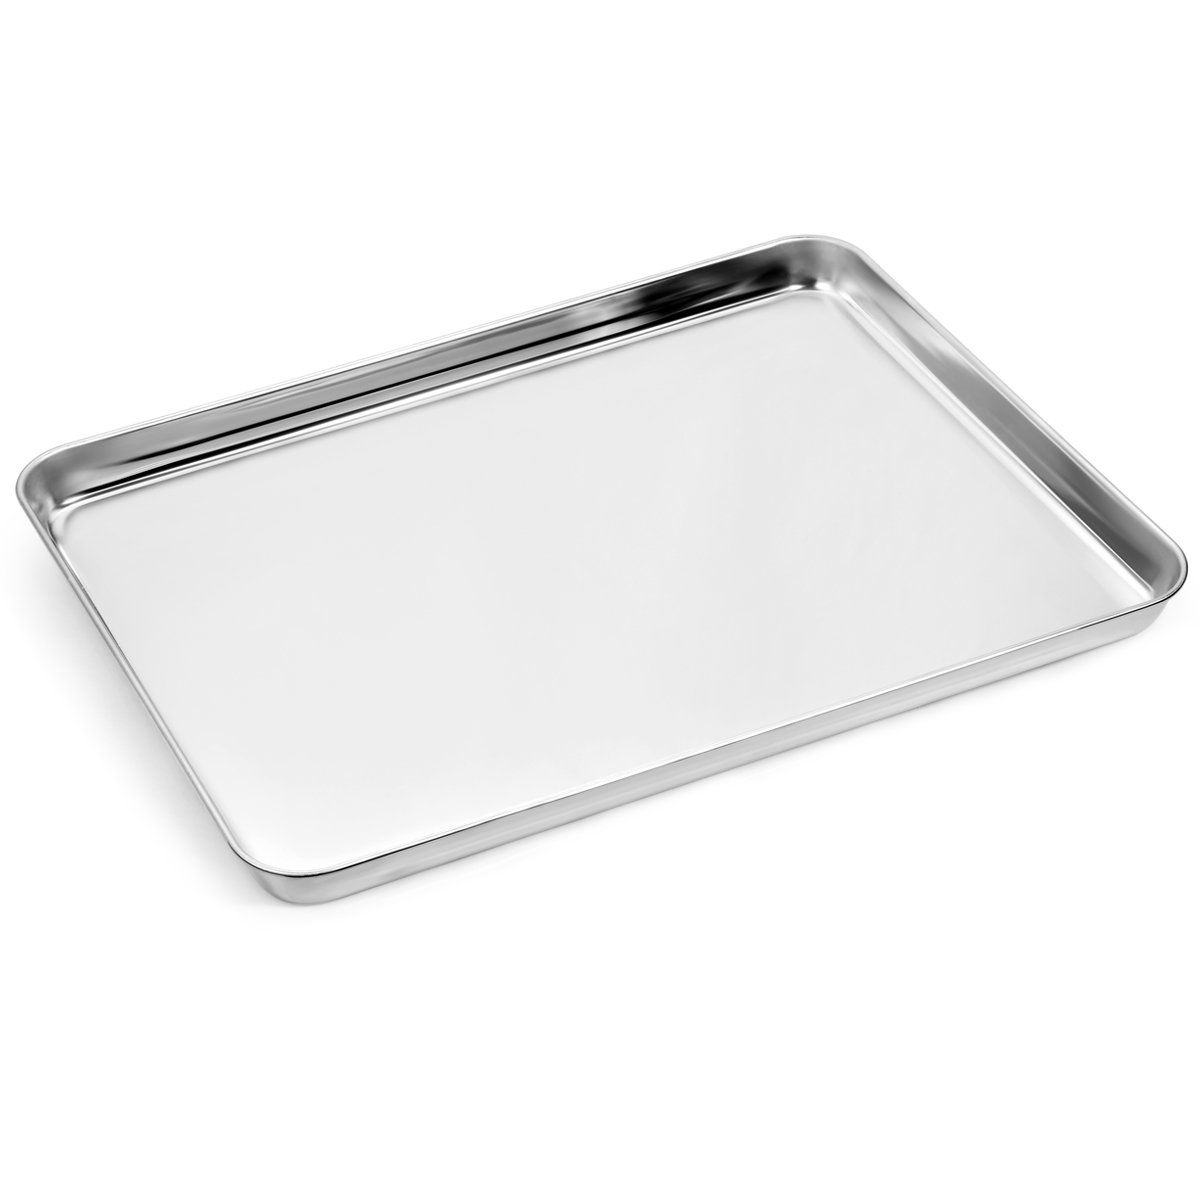 Baking Sheets And Rack Set Zacfton Cookie Pan With Nonstick